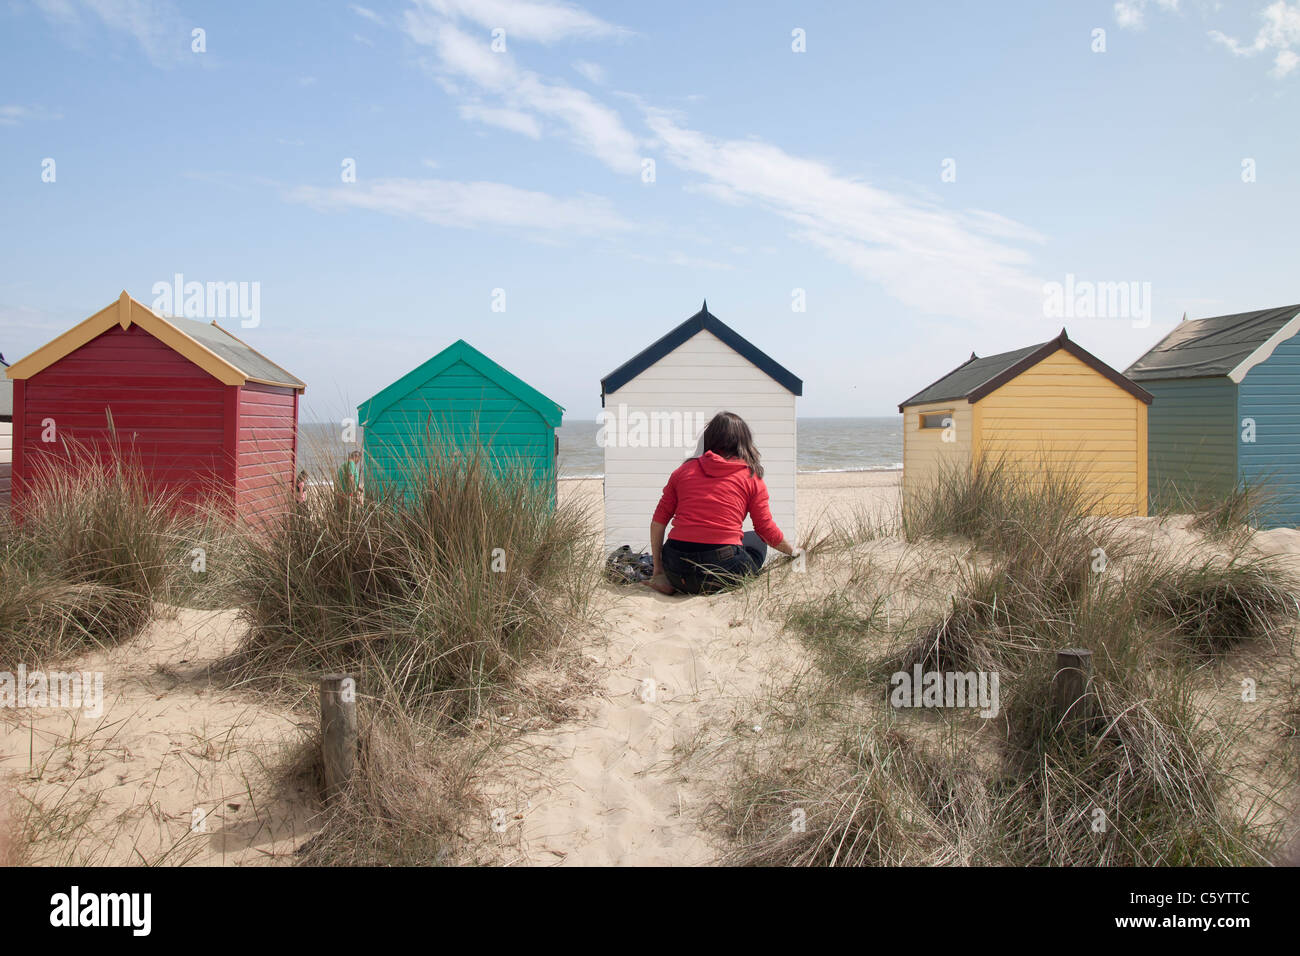 A girl sitting in front of the Beach Huts of Southwold beach in Suffolk, England. - Stock Image